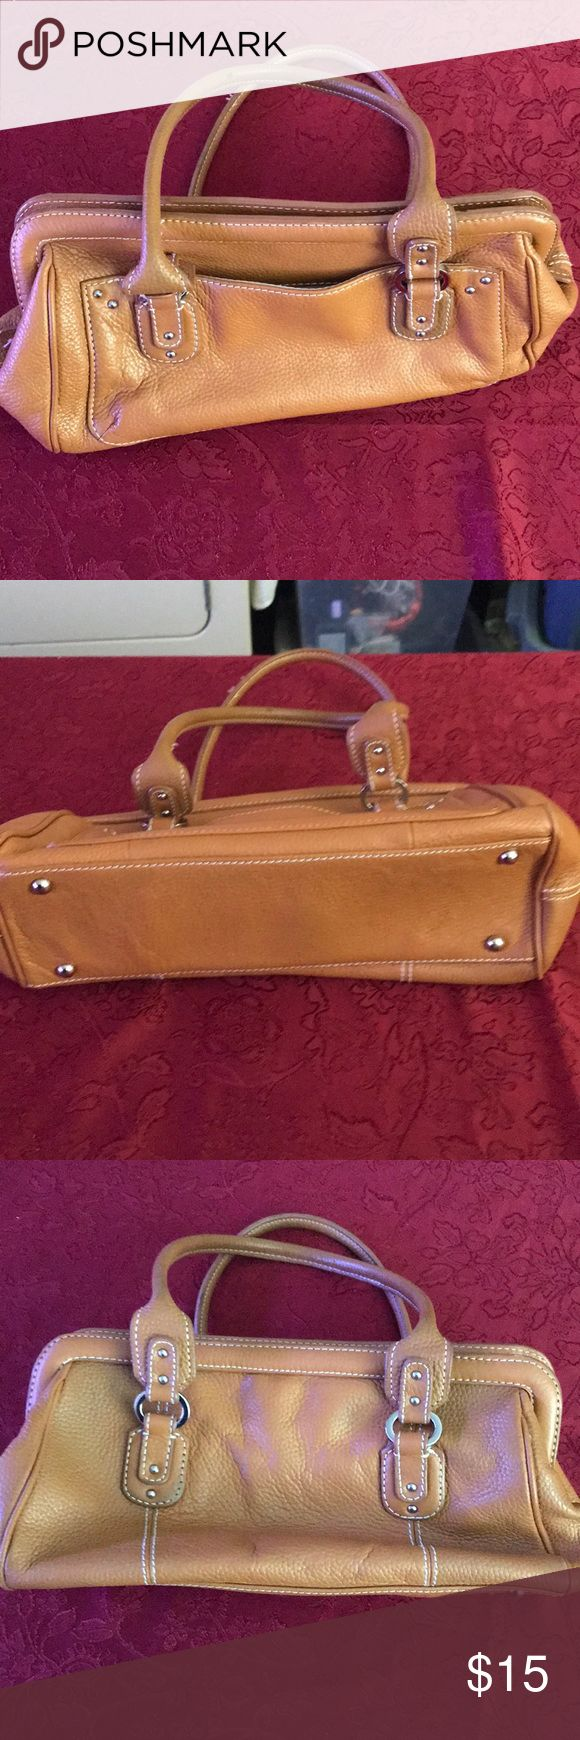 GUC Tignanello Handbag. Slight wear on one corner EUC Tignanello Handbag in beautiful tan color. Small, but functional. Measurements are 13x7x4 Tignanello Bags Satchels